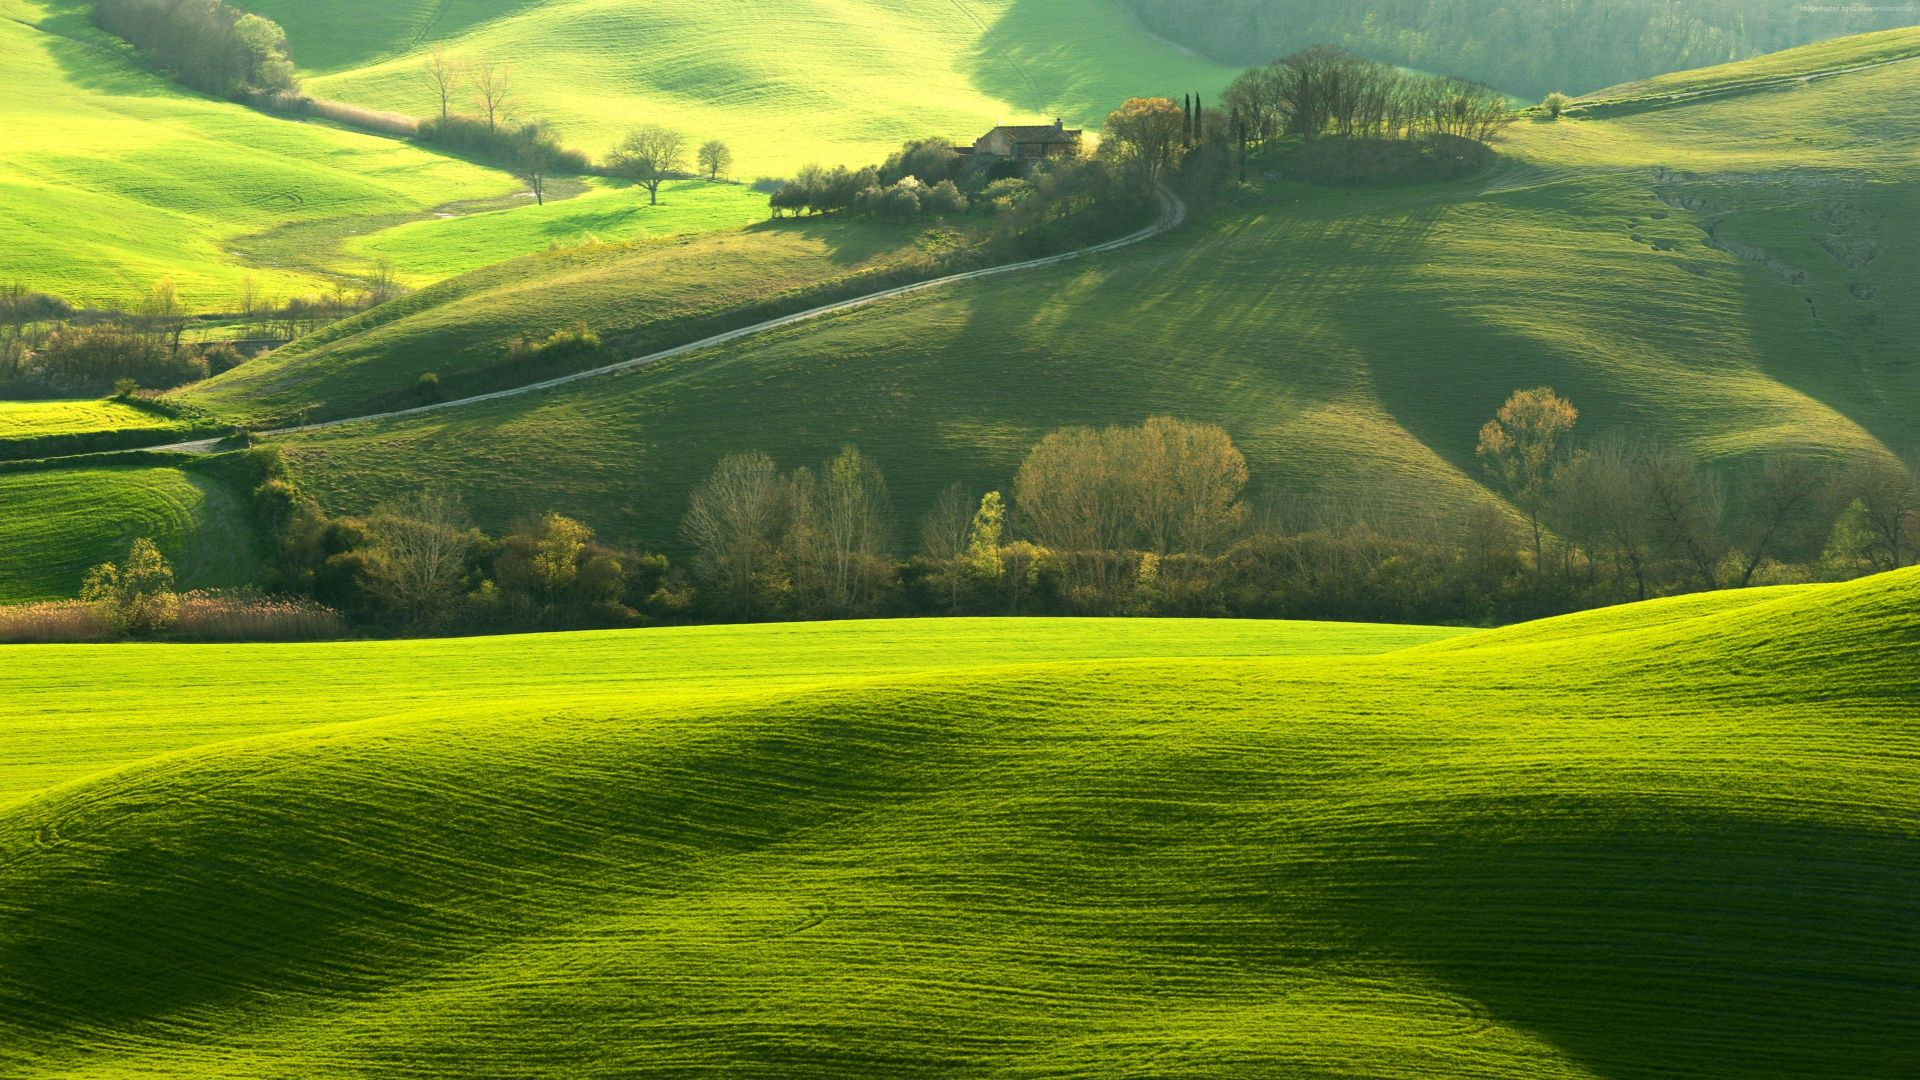 Wallpaper tuscany italy hills green field 8k nature for Green italy